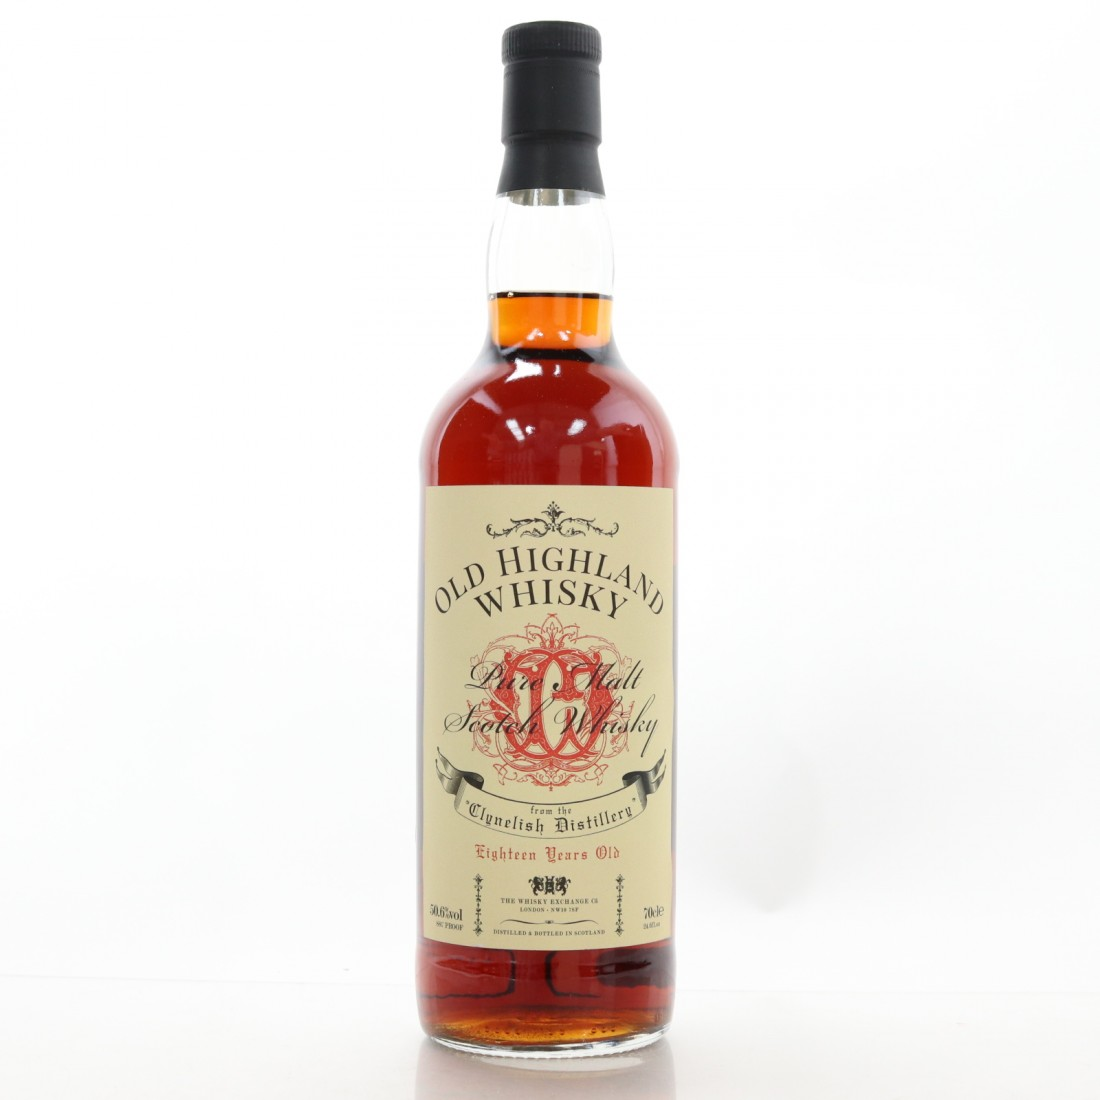 Clynelish 18 Year Old / The Whisky Show 2014